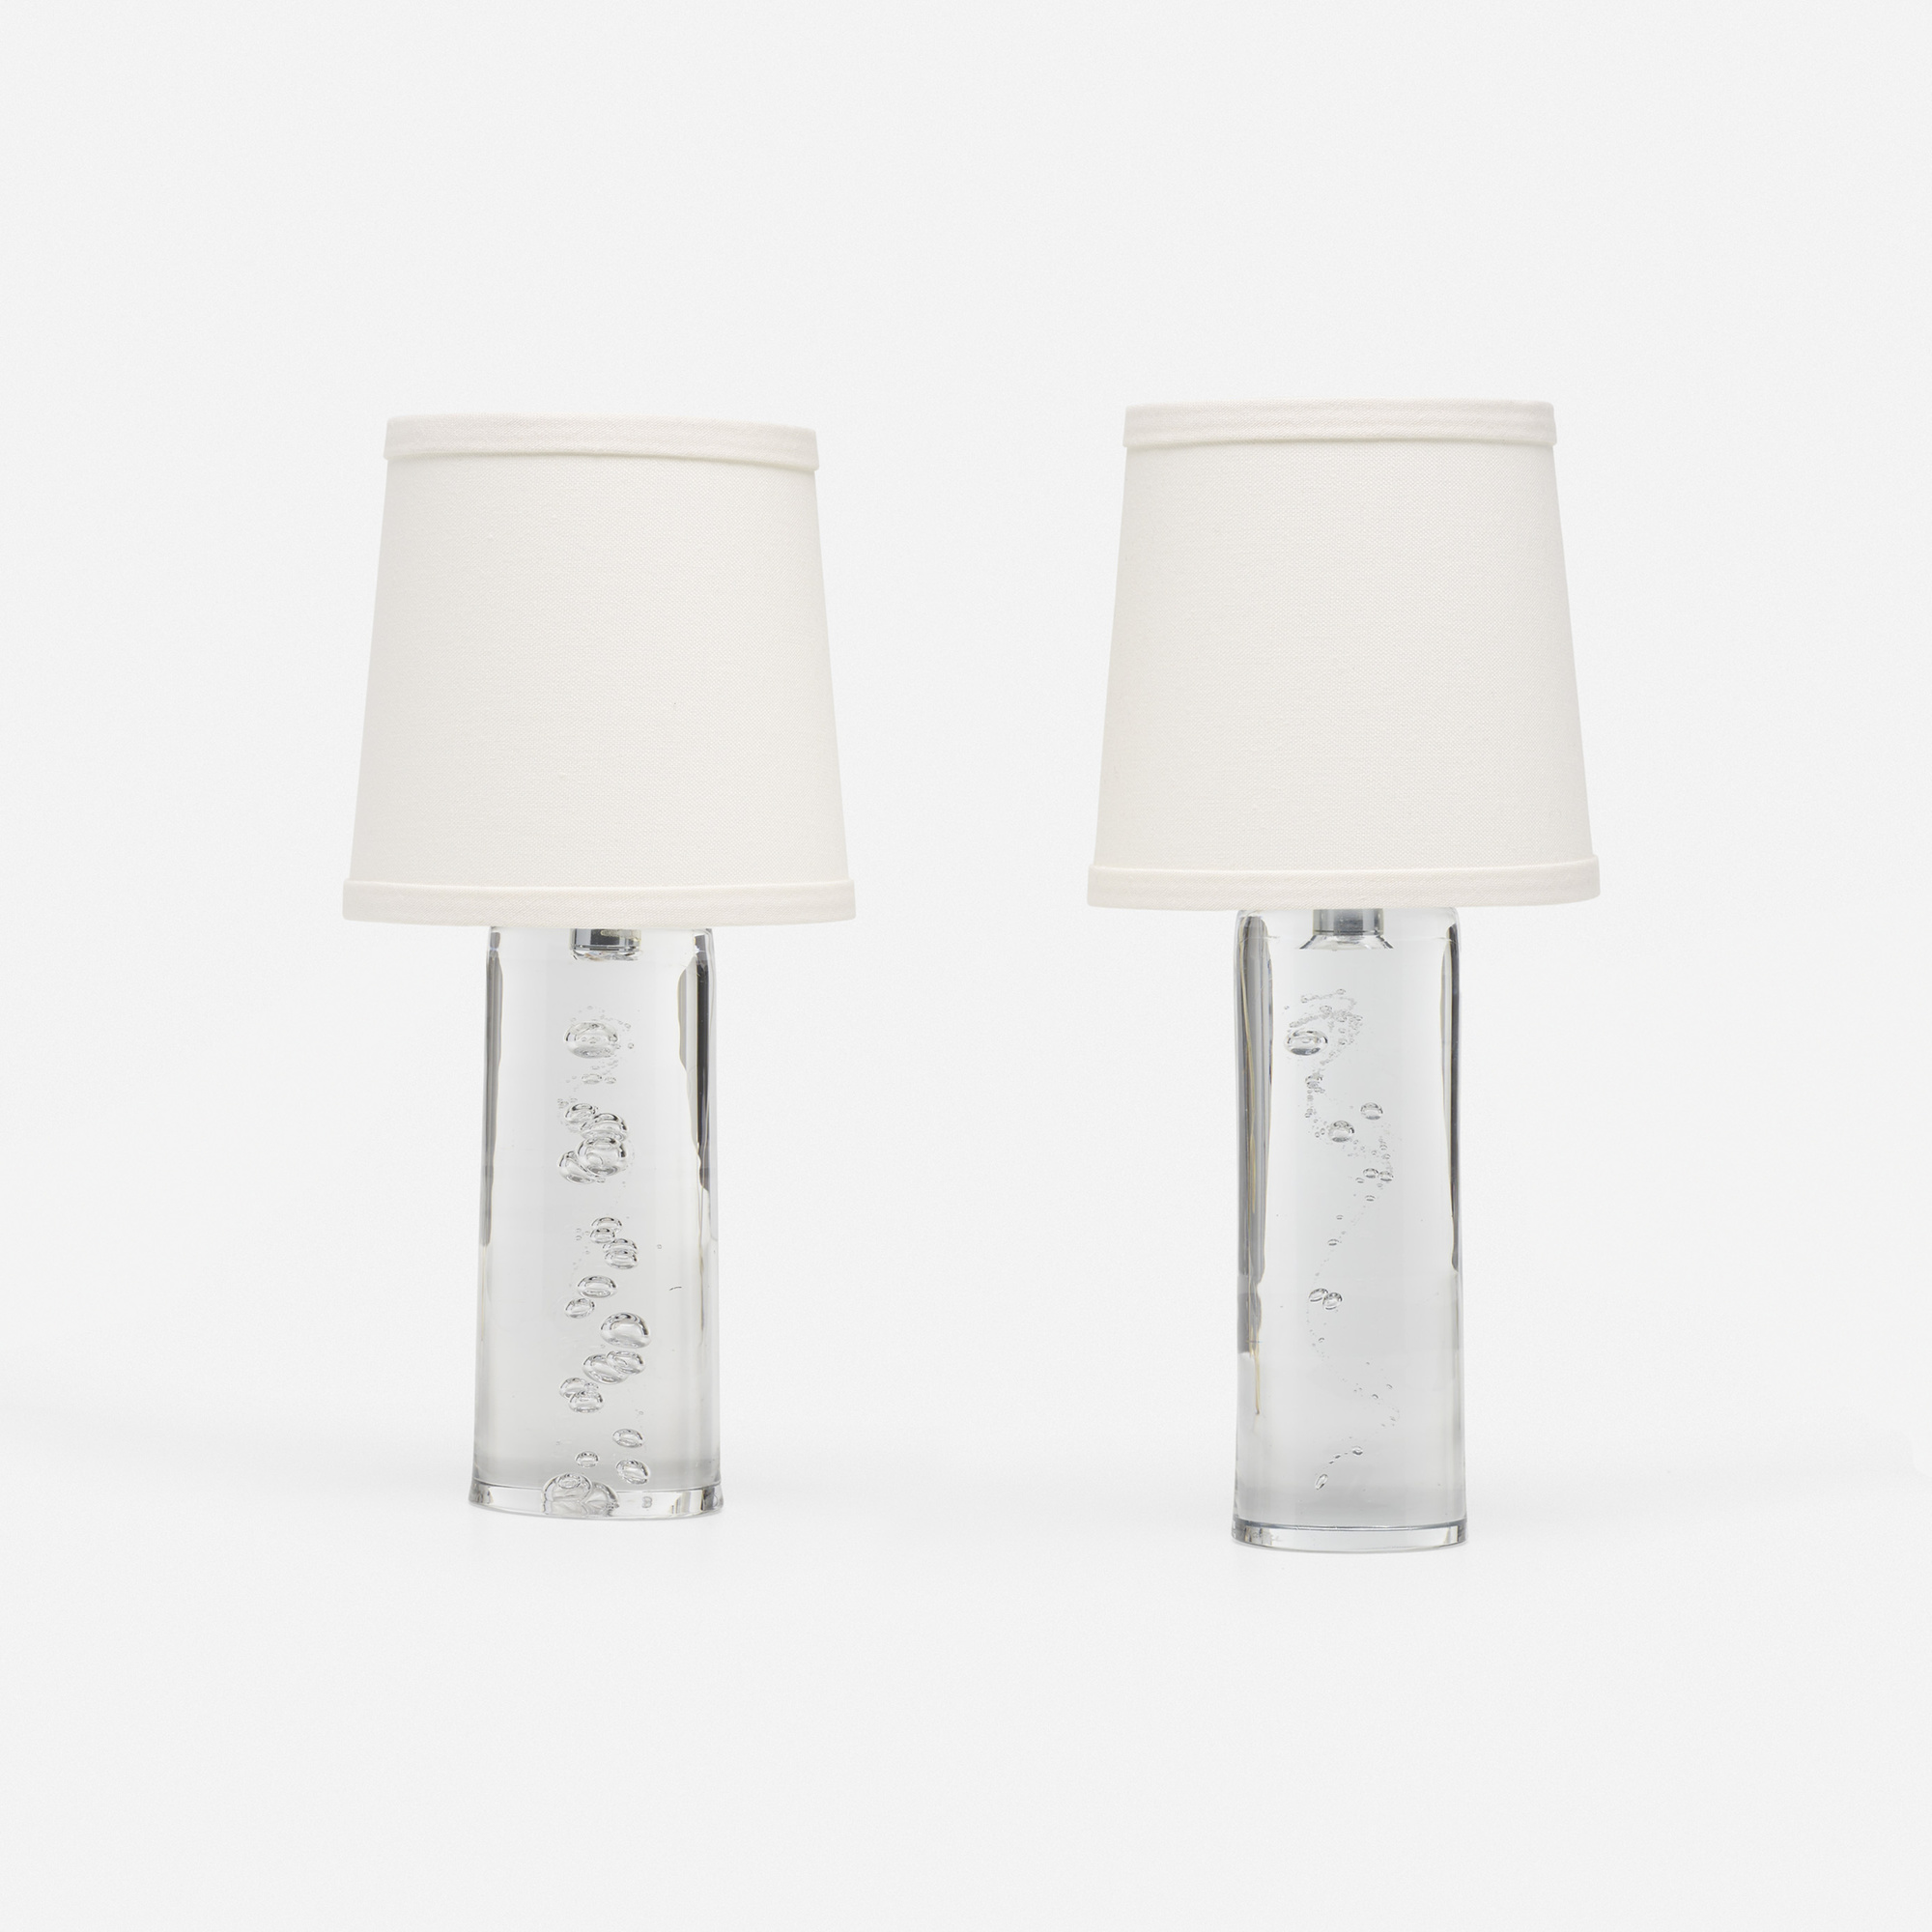 231: Daum / table lamps, set of two (1 of 2)